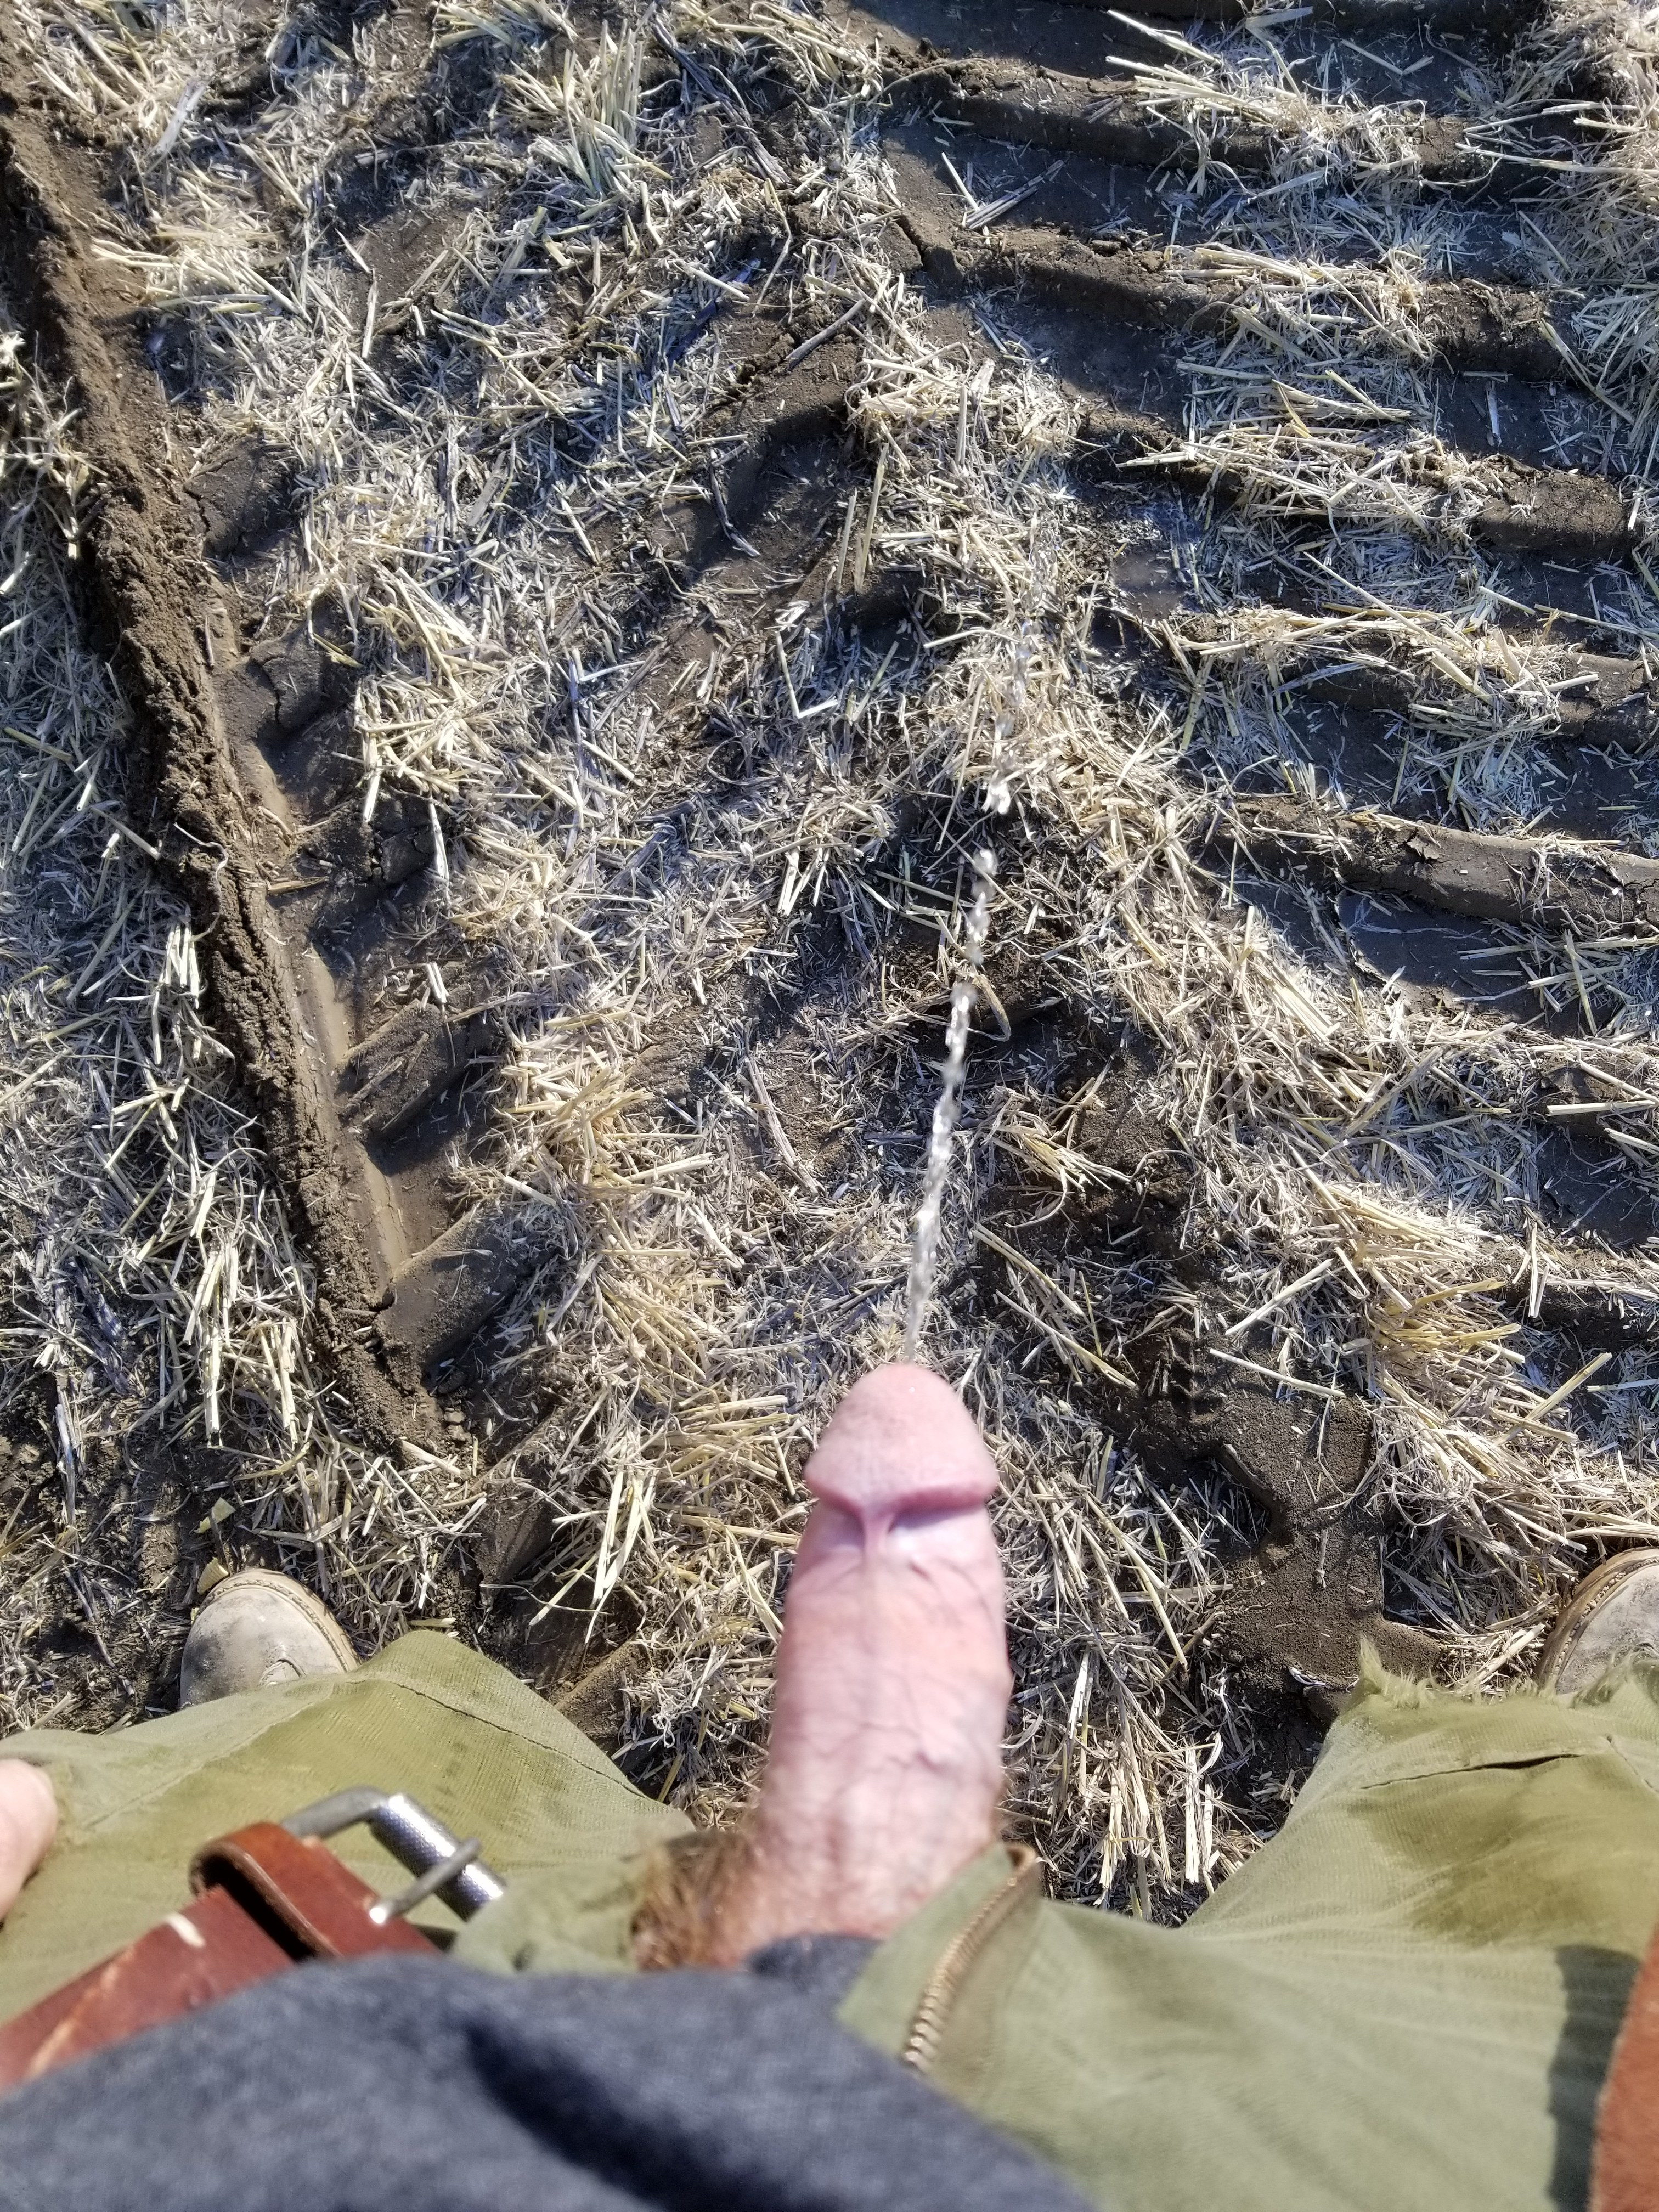 Peeing in a field - Men Peeing: Pictures, Videos & Stories